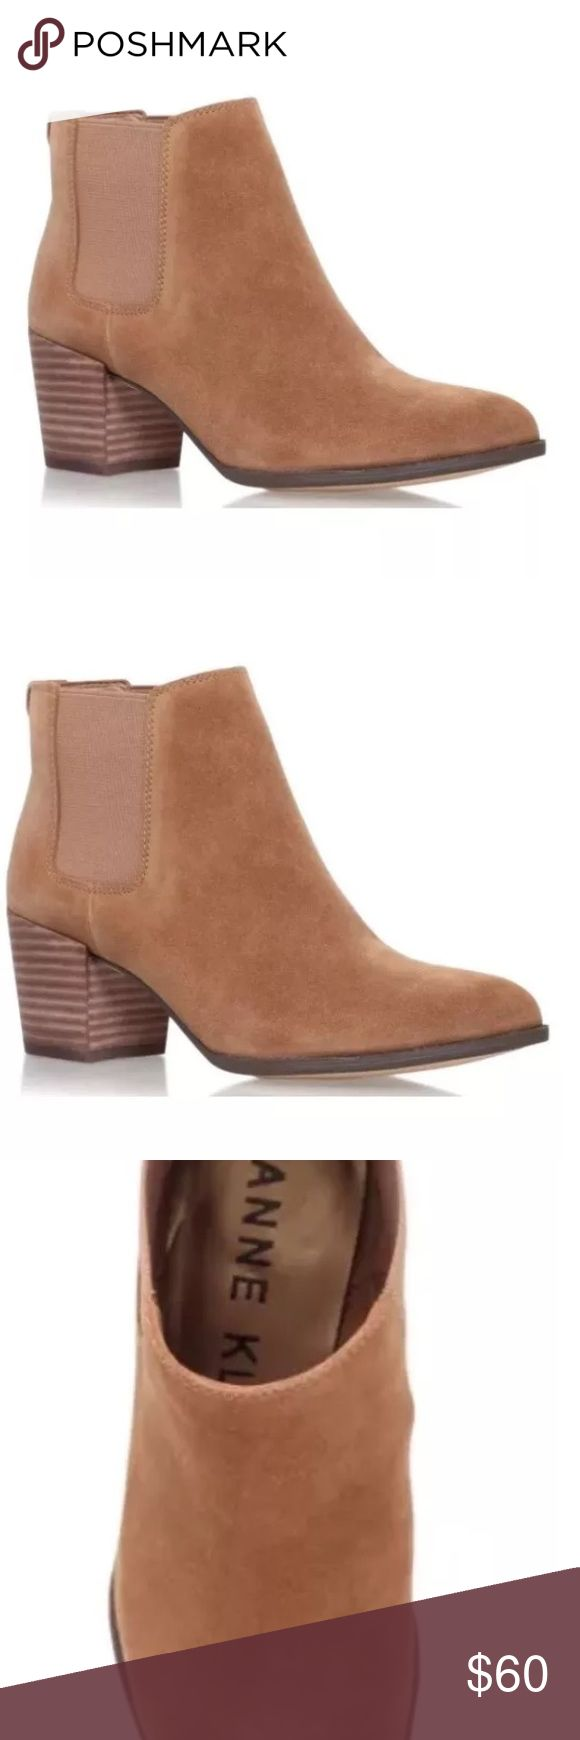 Anne Klein Geordanna  Chelsea Boot, Natural 8.5 Brand: Anne Klein Heel: 2.50 inches (6.35 CM) Material: Suede Color: Medium Natural/Medium Natural Toe-Shape: Pointed Toe Size: 8.5 US The boot shaft measures approximately 3.00 inches (7.62 CM) tall and has an opening of 8.00 inches (20.32 CM). Condition: Brand new in original box. Anne Klein Shoes Ankle Boots & Booties